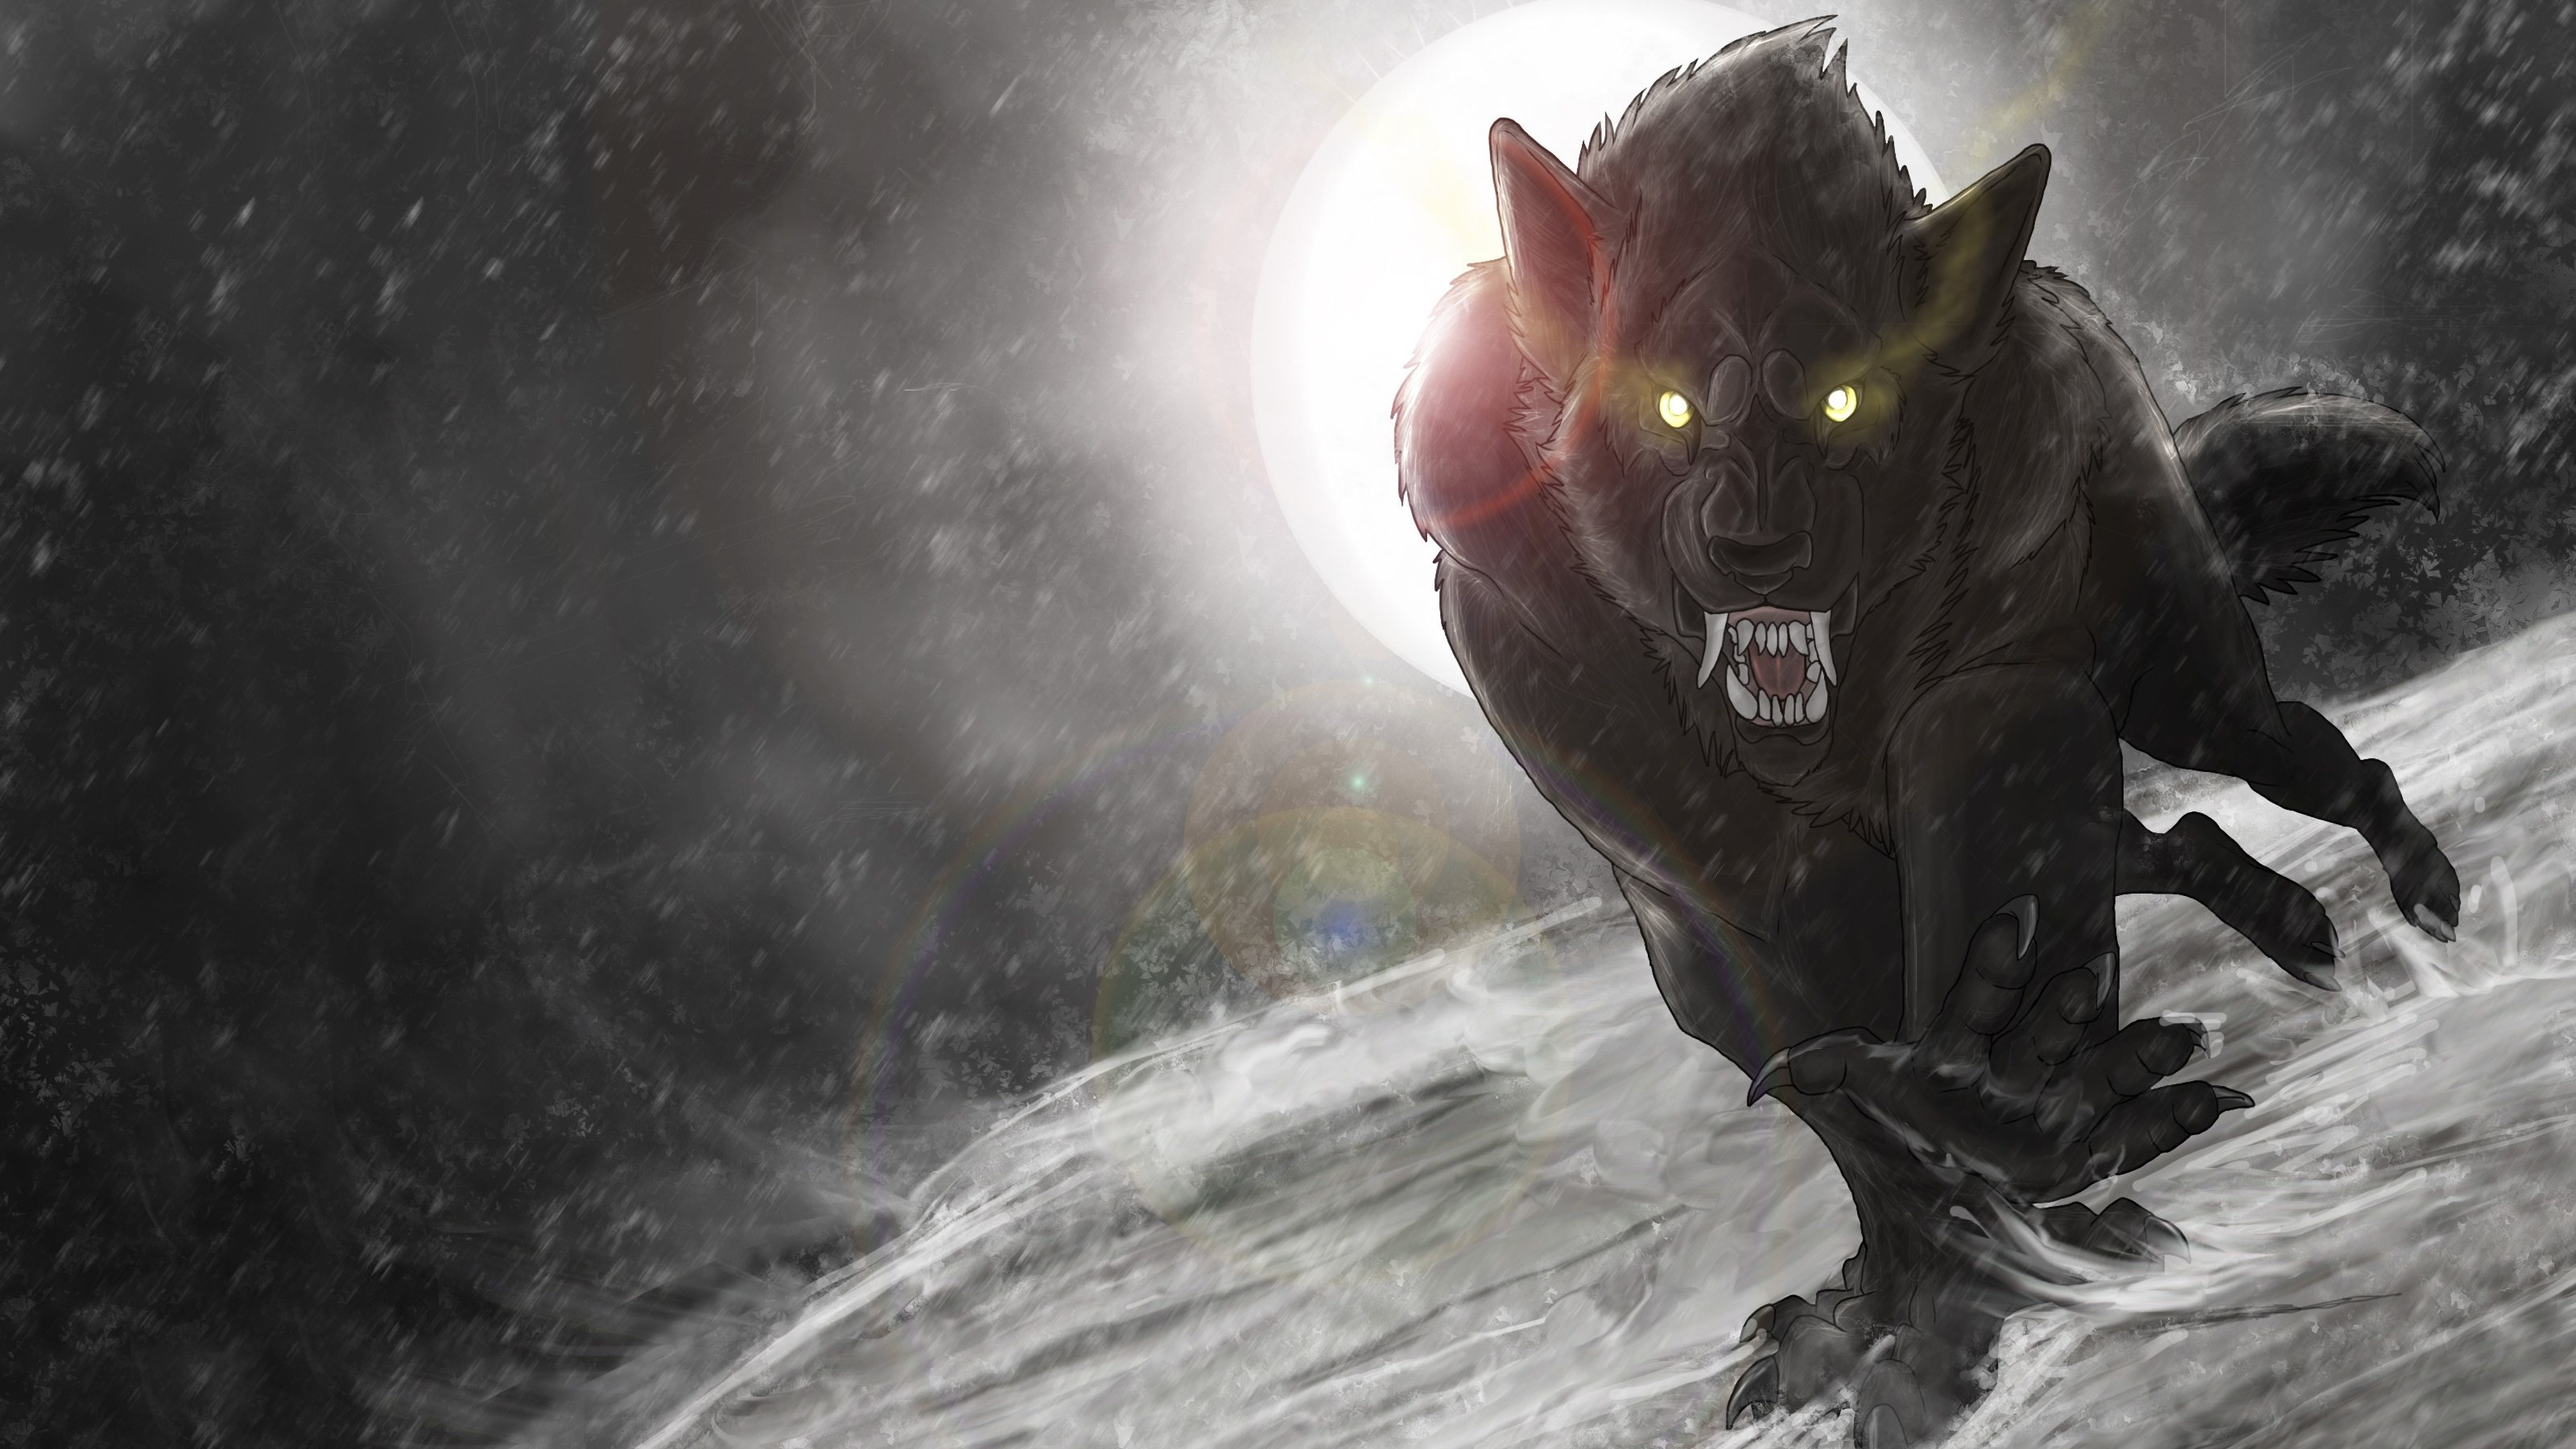 Res: 3200x1800,  px werewolf wallpaper - Full HD Backgrounds by Welch Nash-Williams